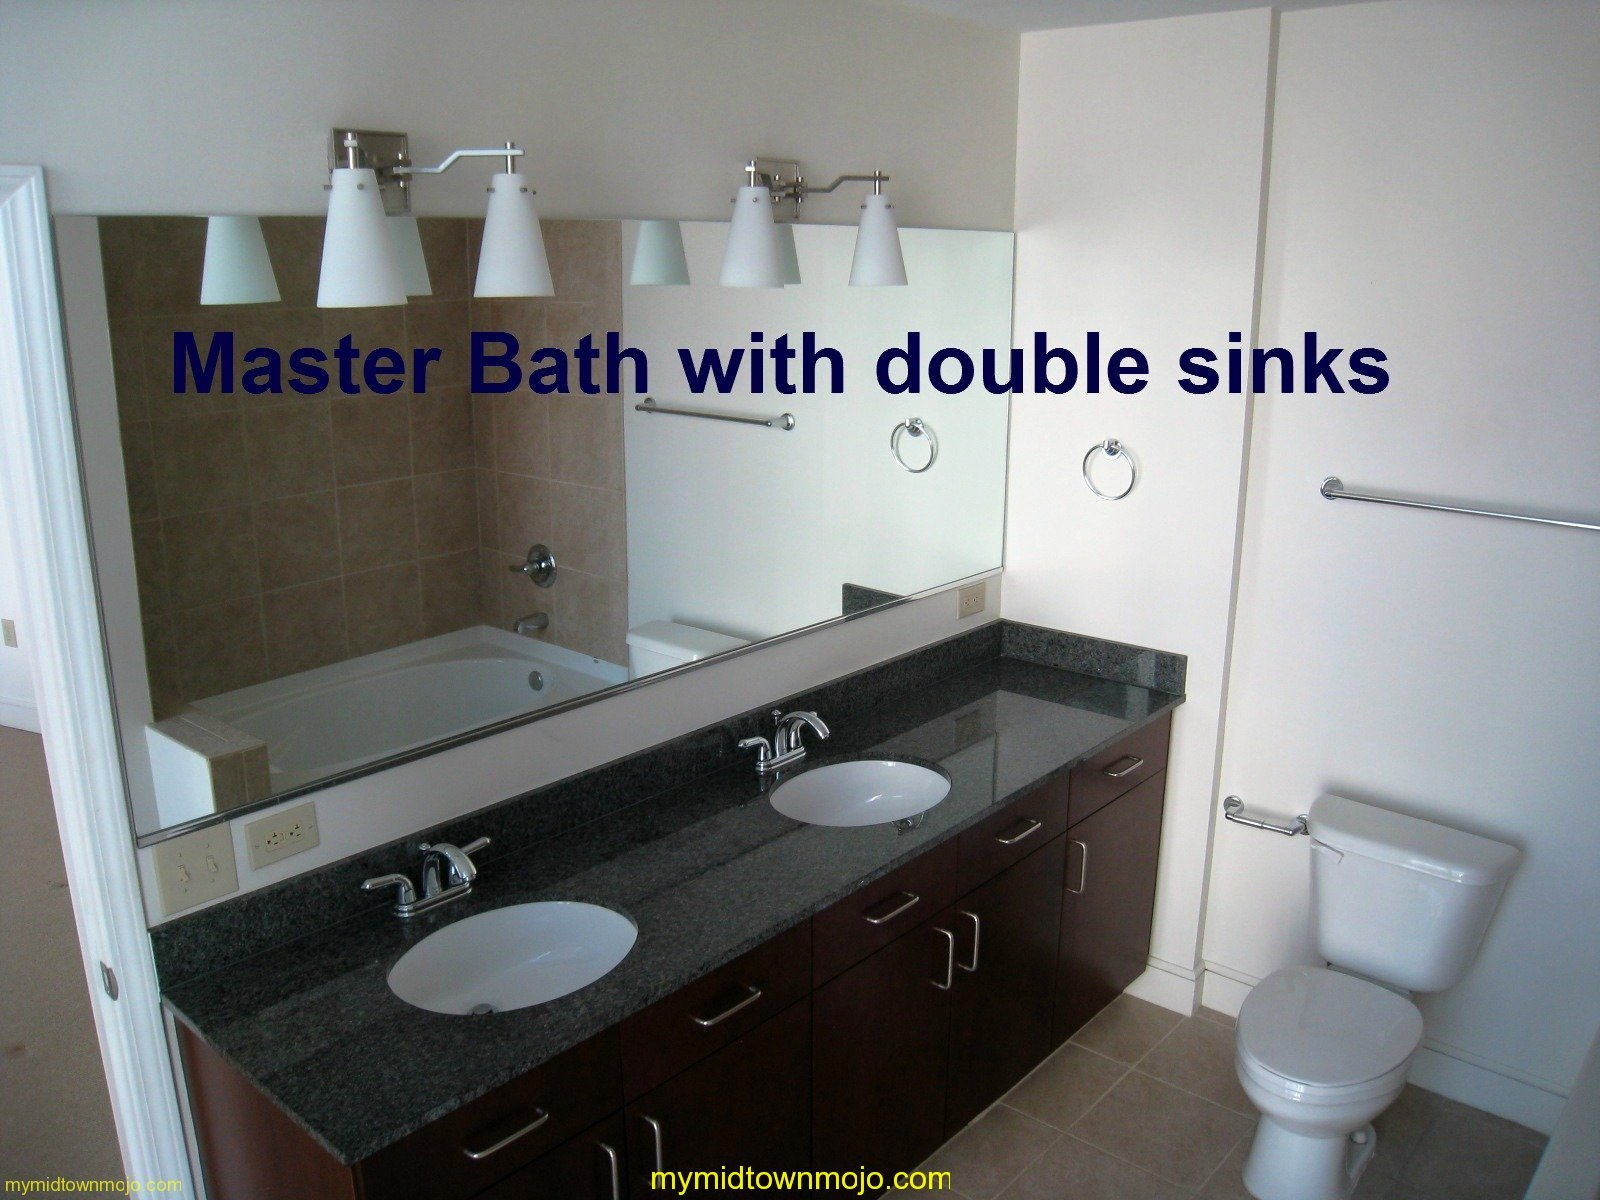 plaza-midtown-master-bath